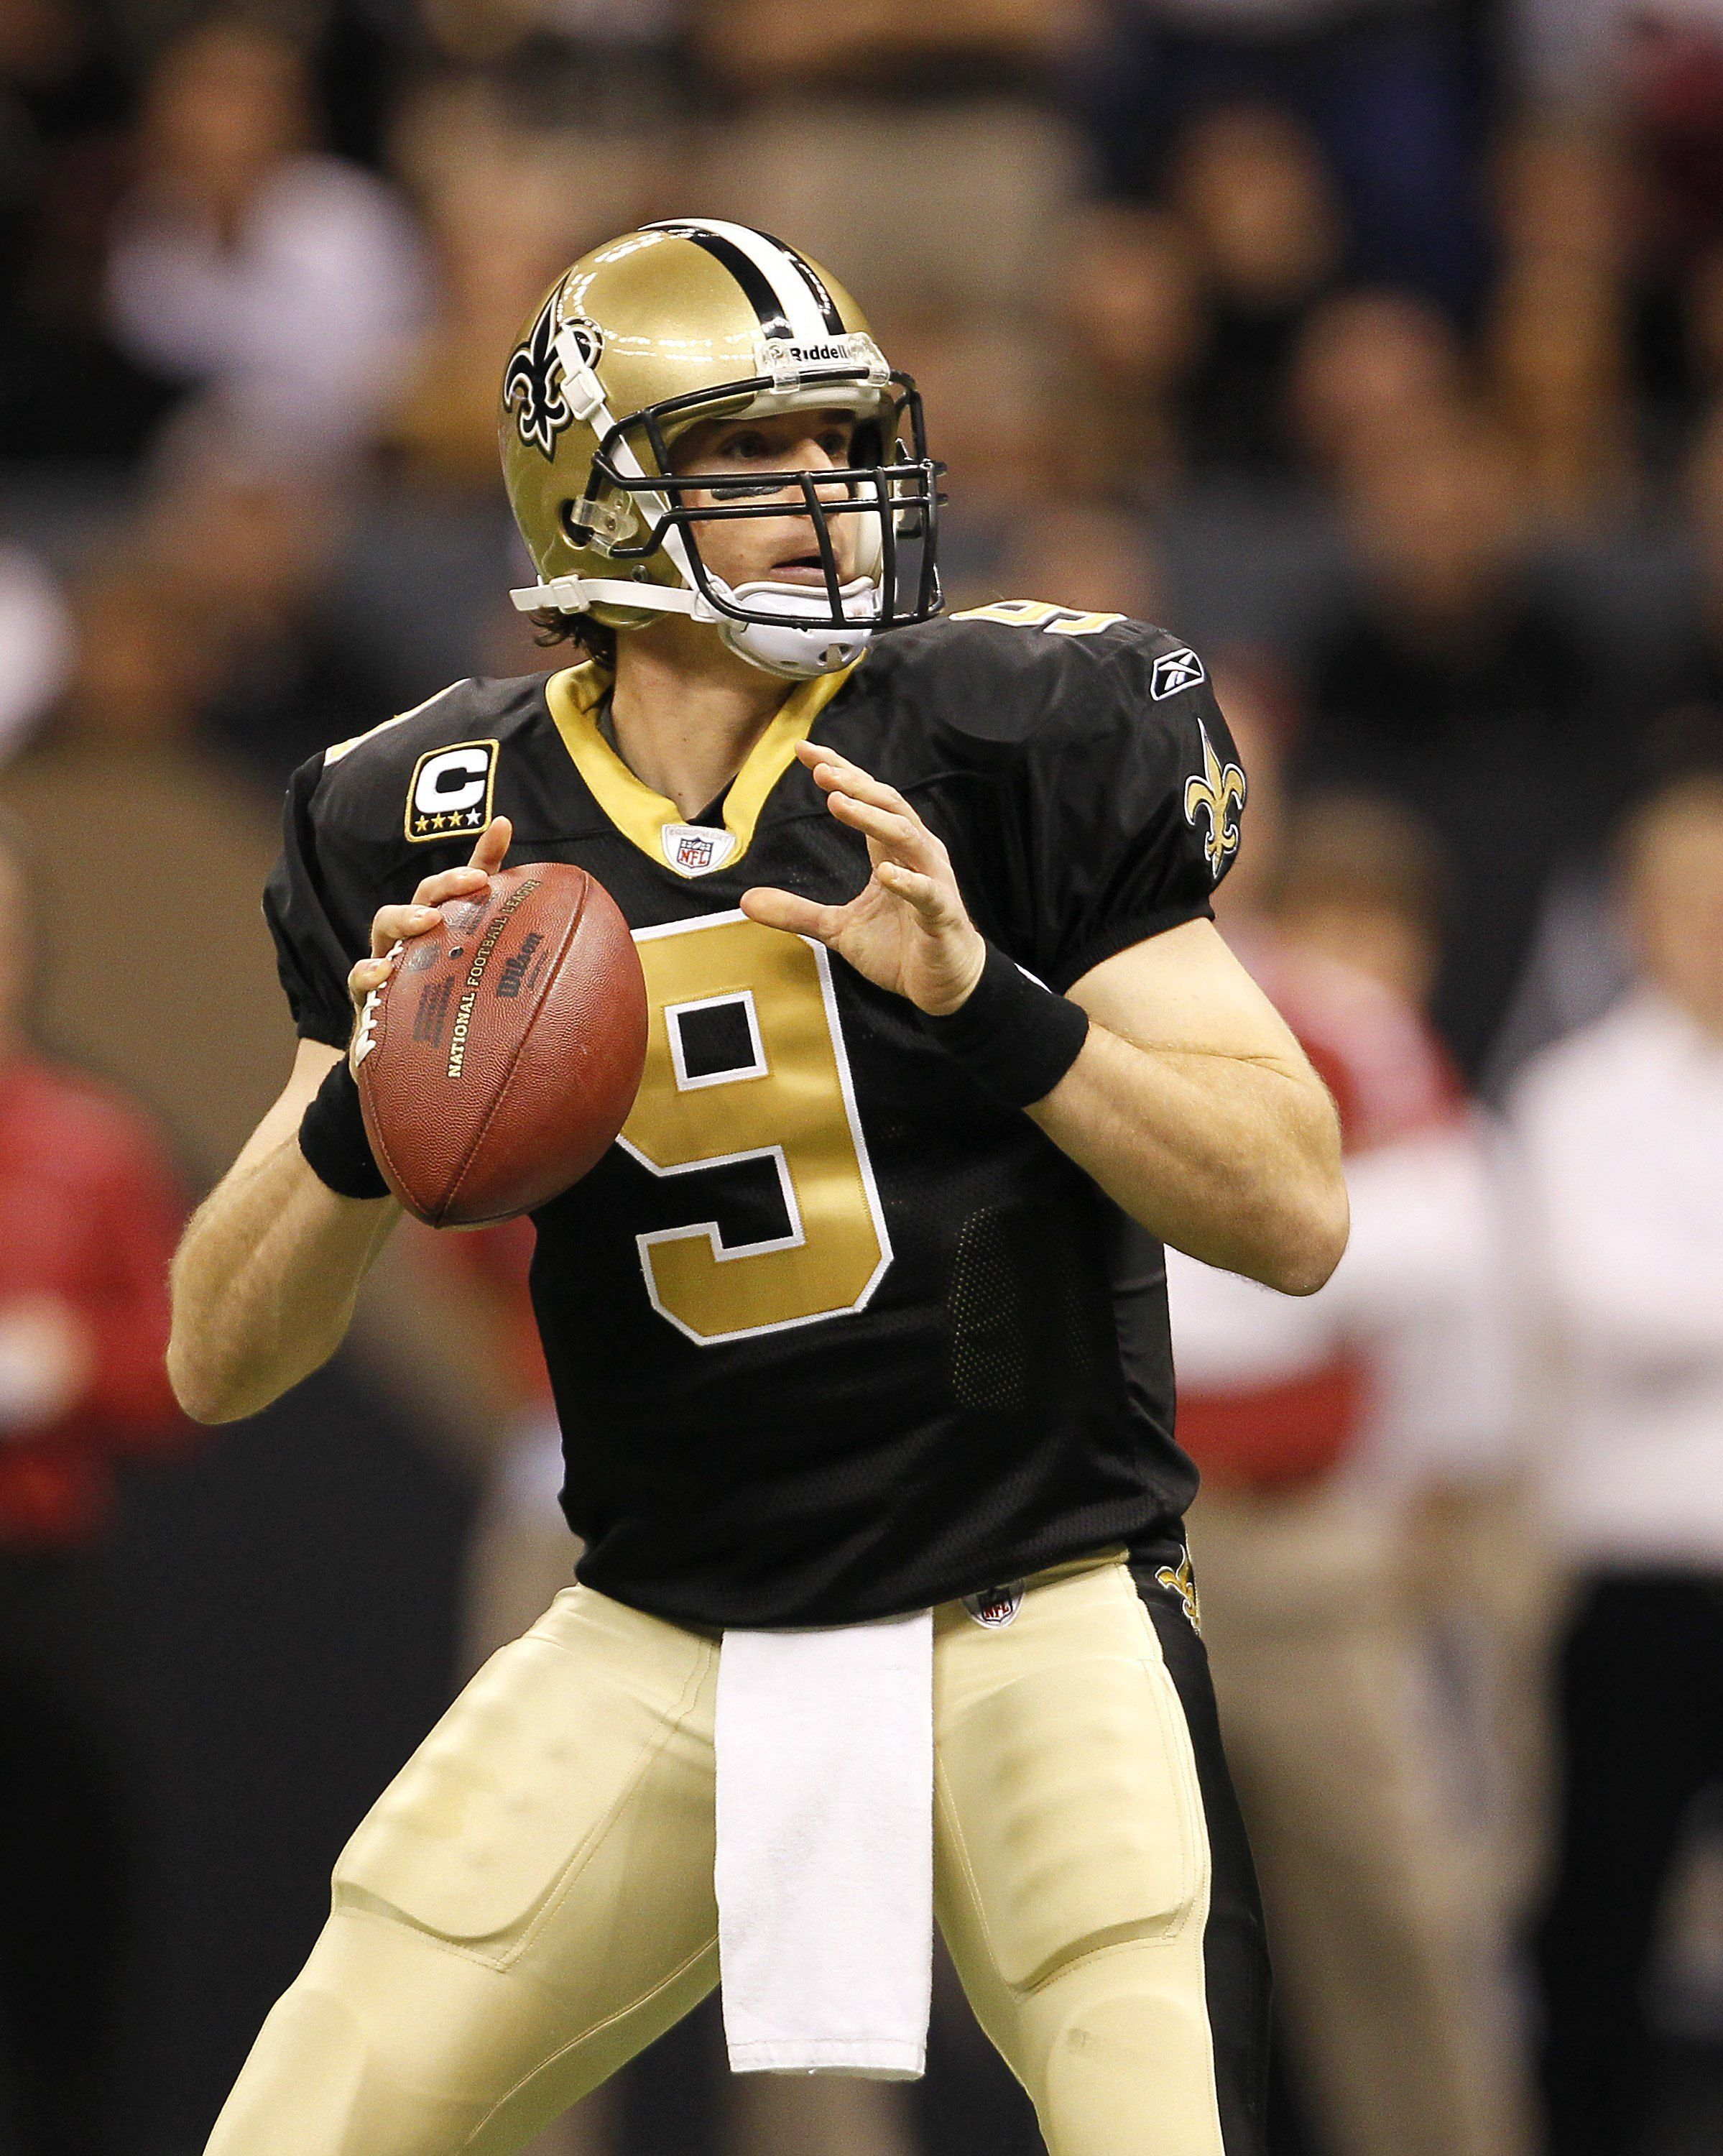 Drew brees this guy is amazing!